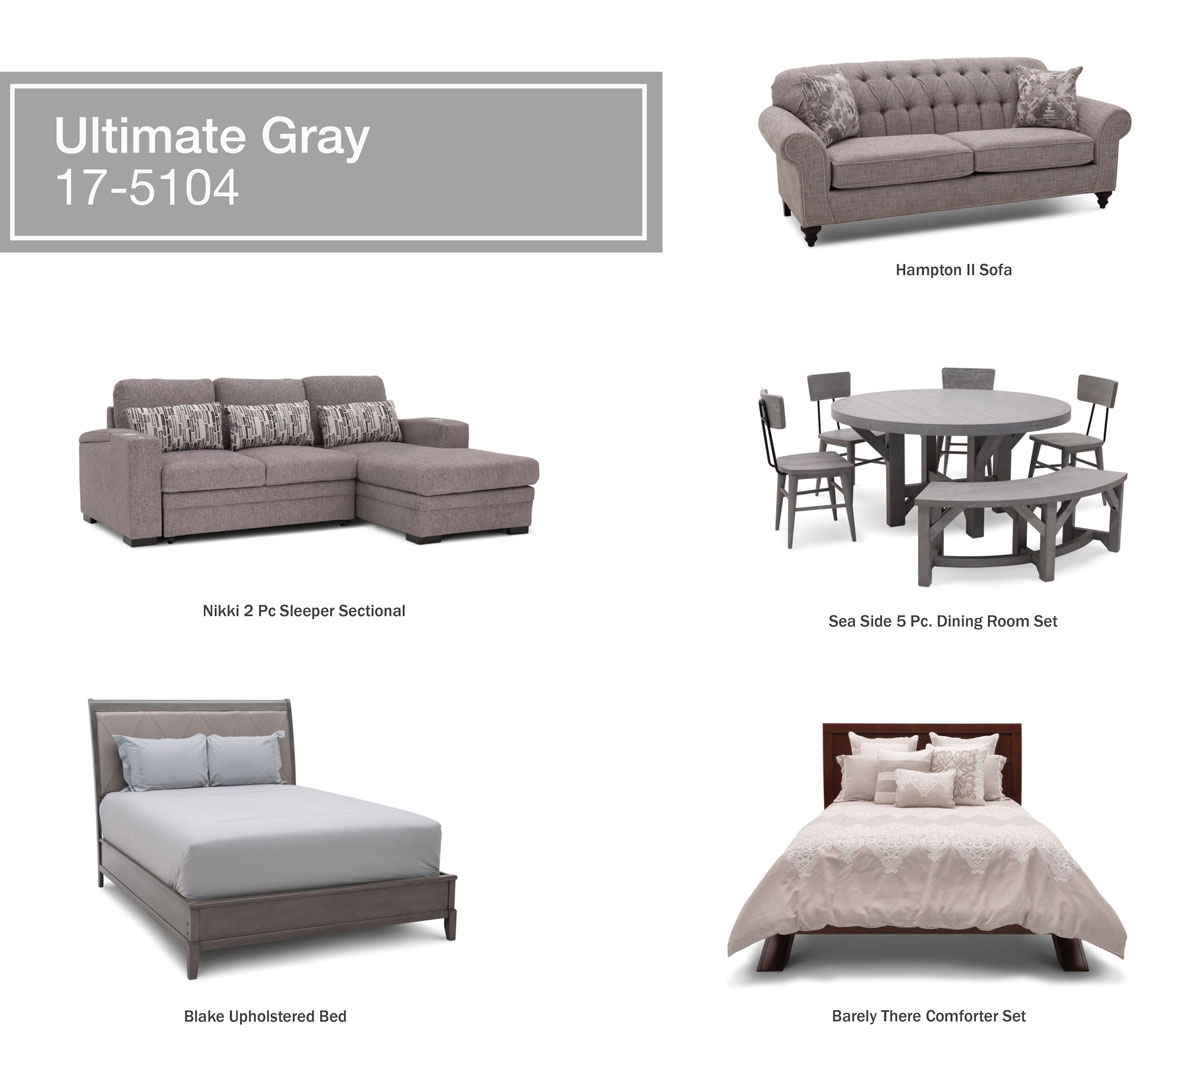 Ultimate Gray Products